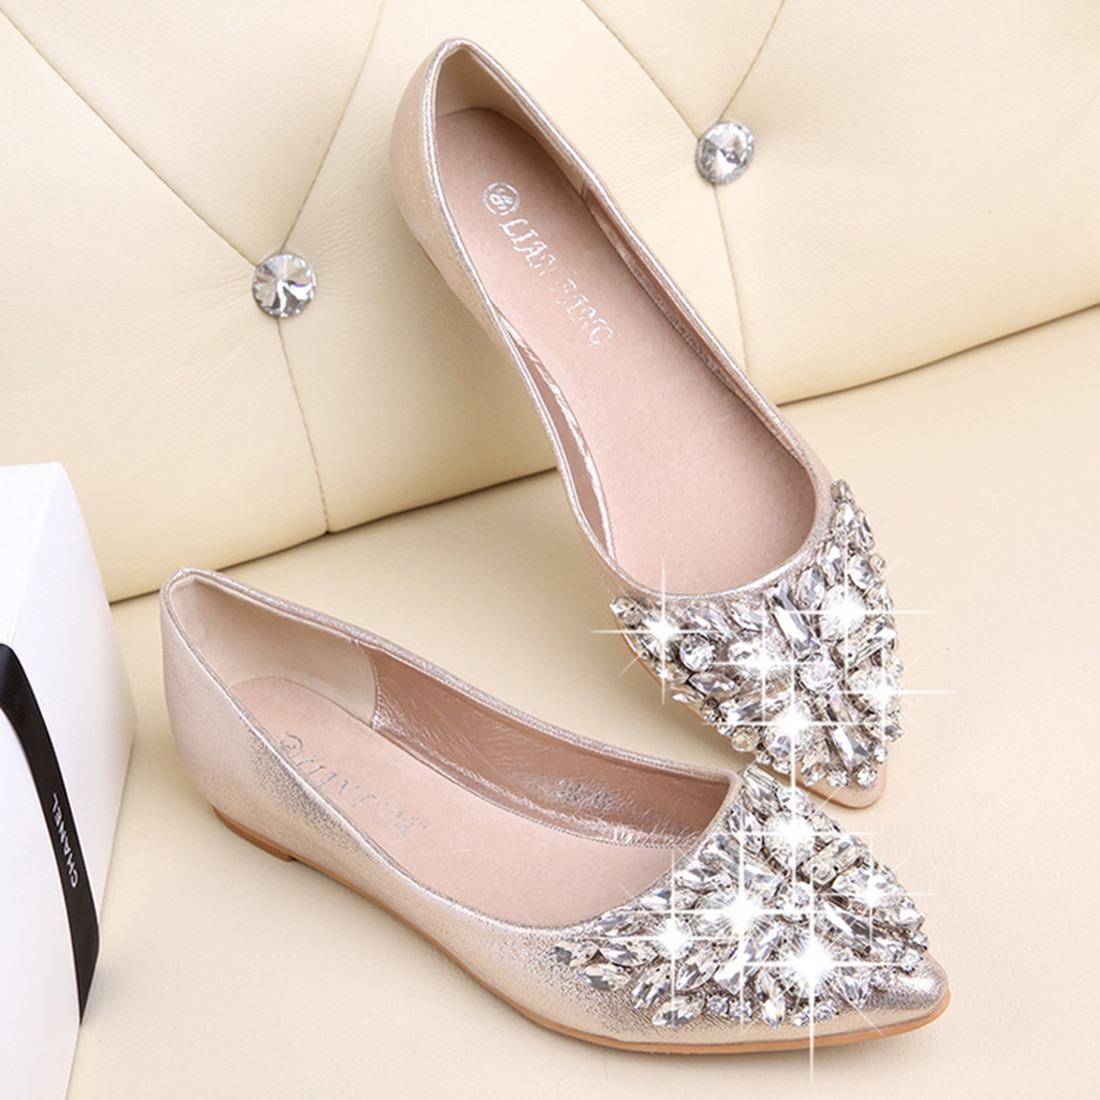 2019 Spring Women Flat Shoes Shiny Crystal Ballet Shoes Pointy Bling Rhinestone Flats Pink Silver Casual Shoes Women Footwear